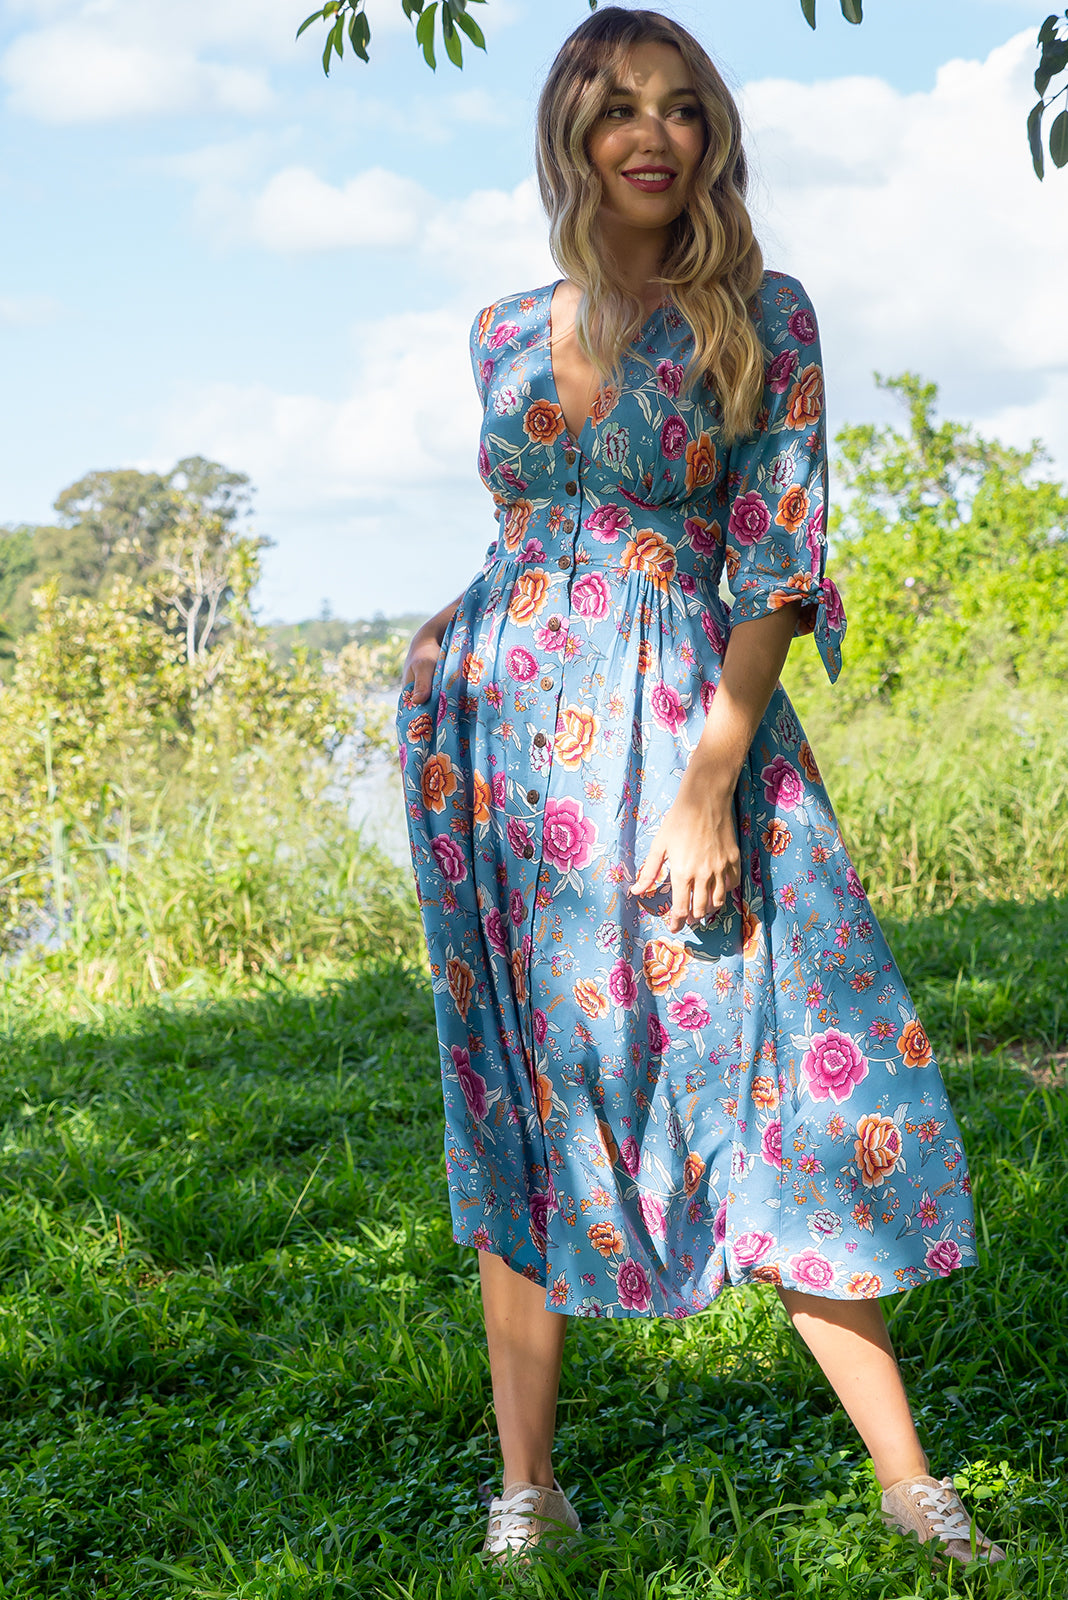 Judith Arctic Roses Midi dress features a vintage inspired fitted basque waist, elasticated waist with a midi sleeve, deep v neck  and fully functional button front in a soft woven rayon fabric with a bohemian romantic bright bohemian floral print on a steel grey base